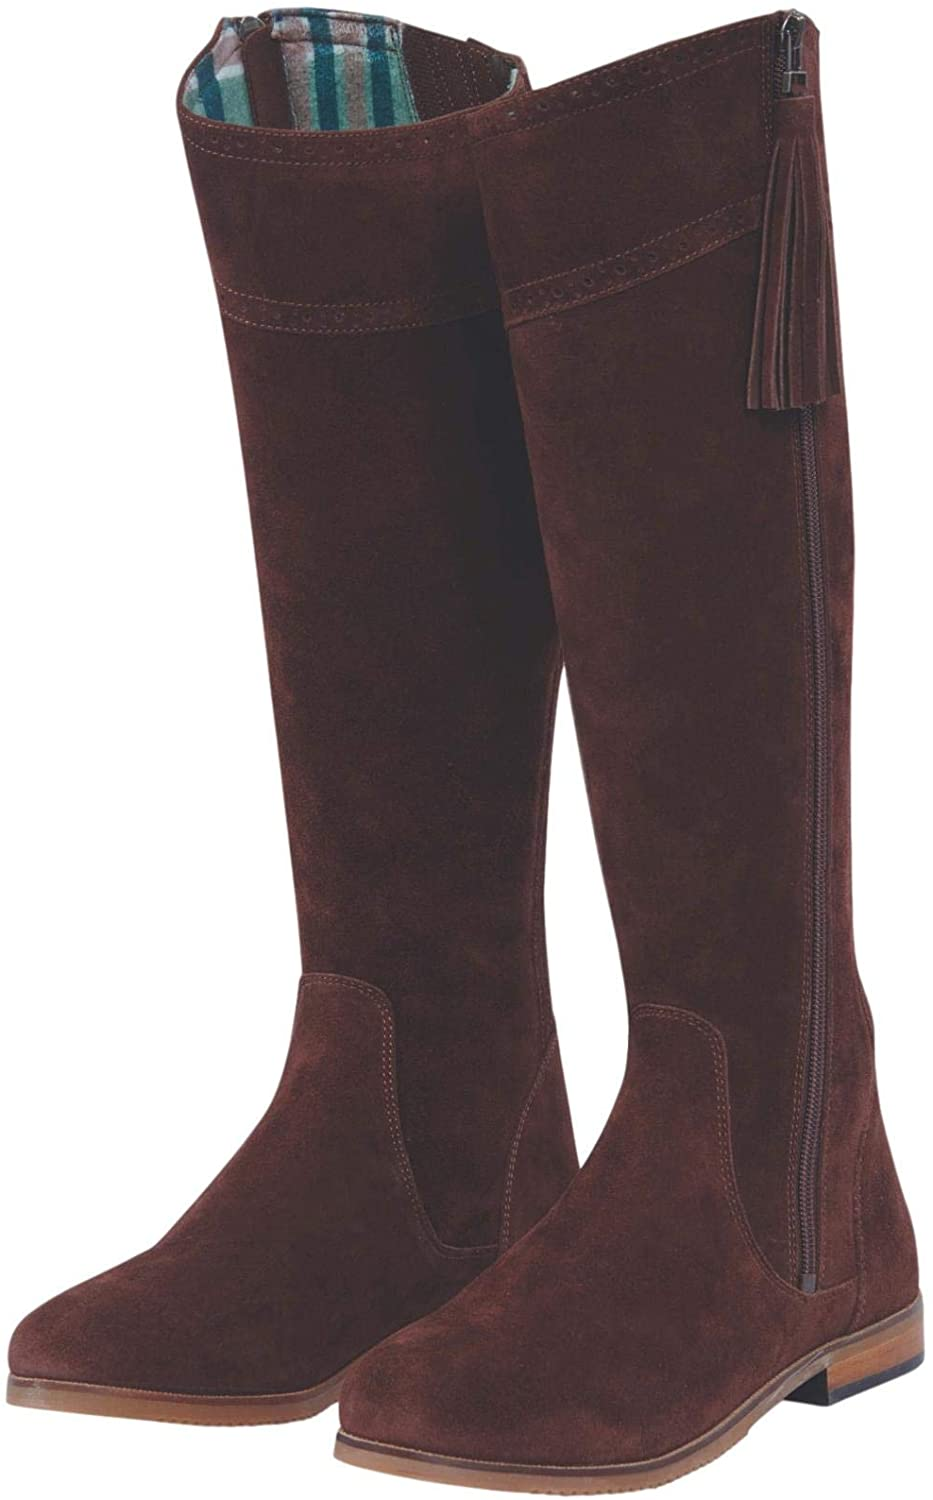 Dublin Kalmar SD Tall Boots (Chocolate, 6.5)